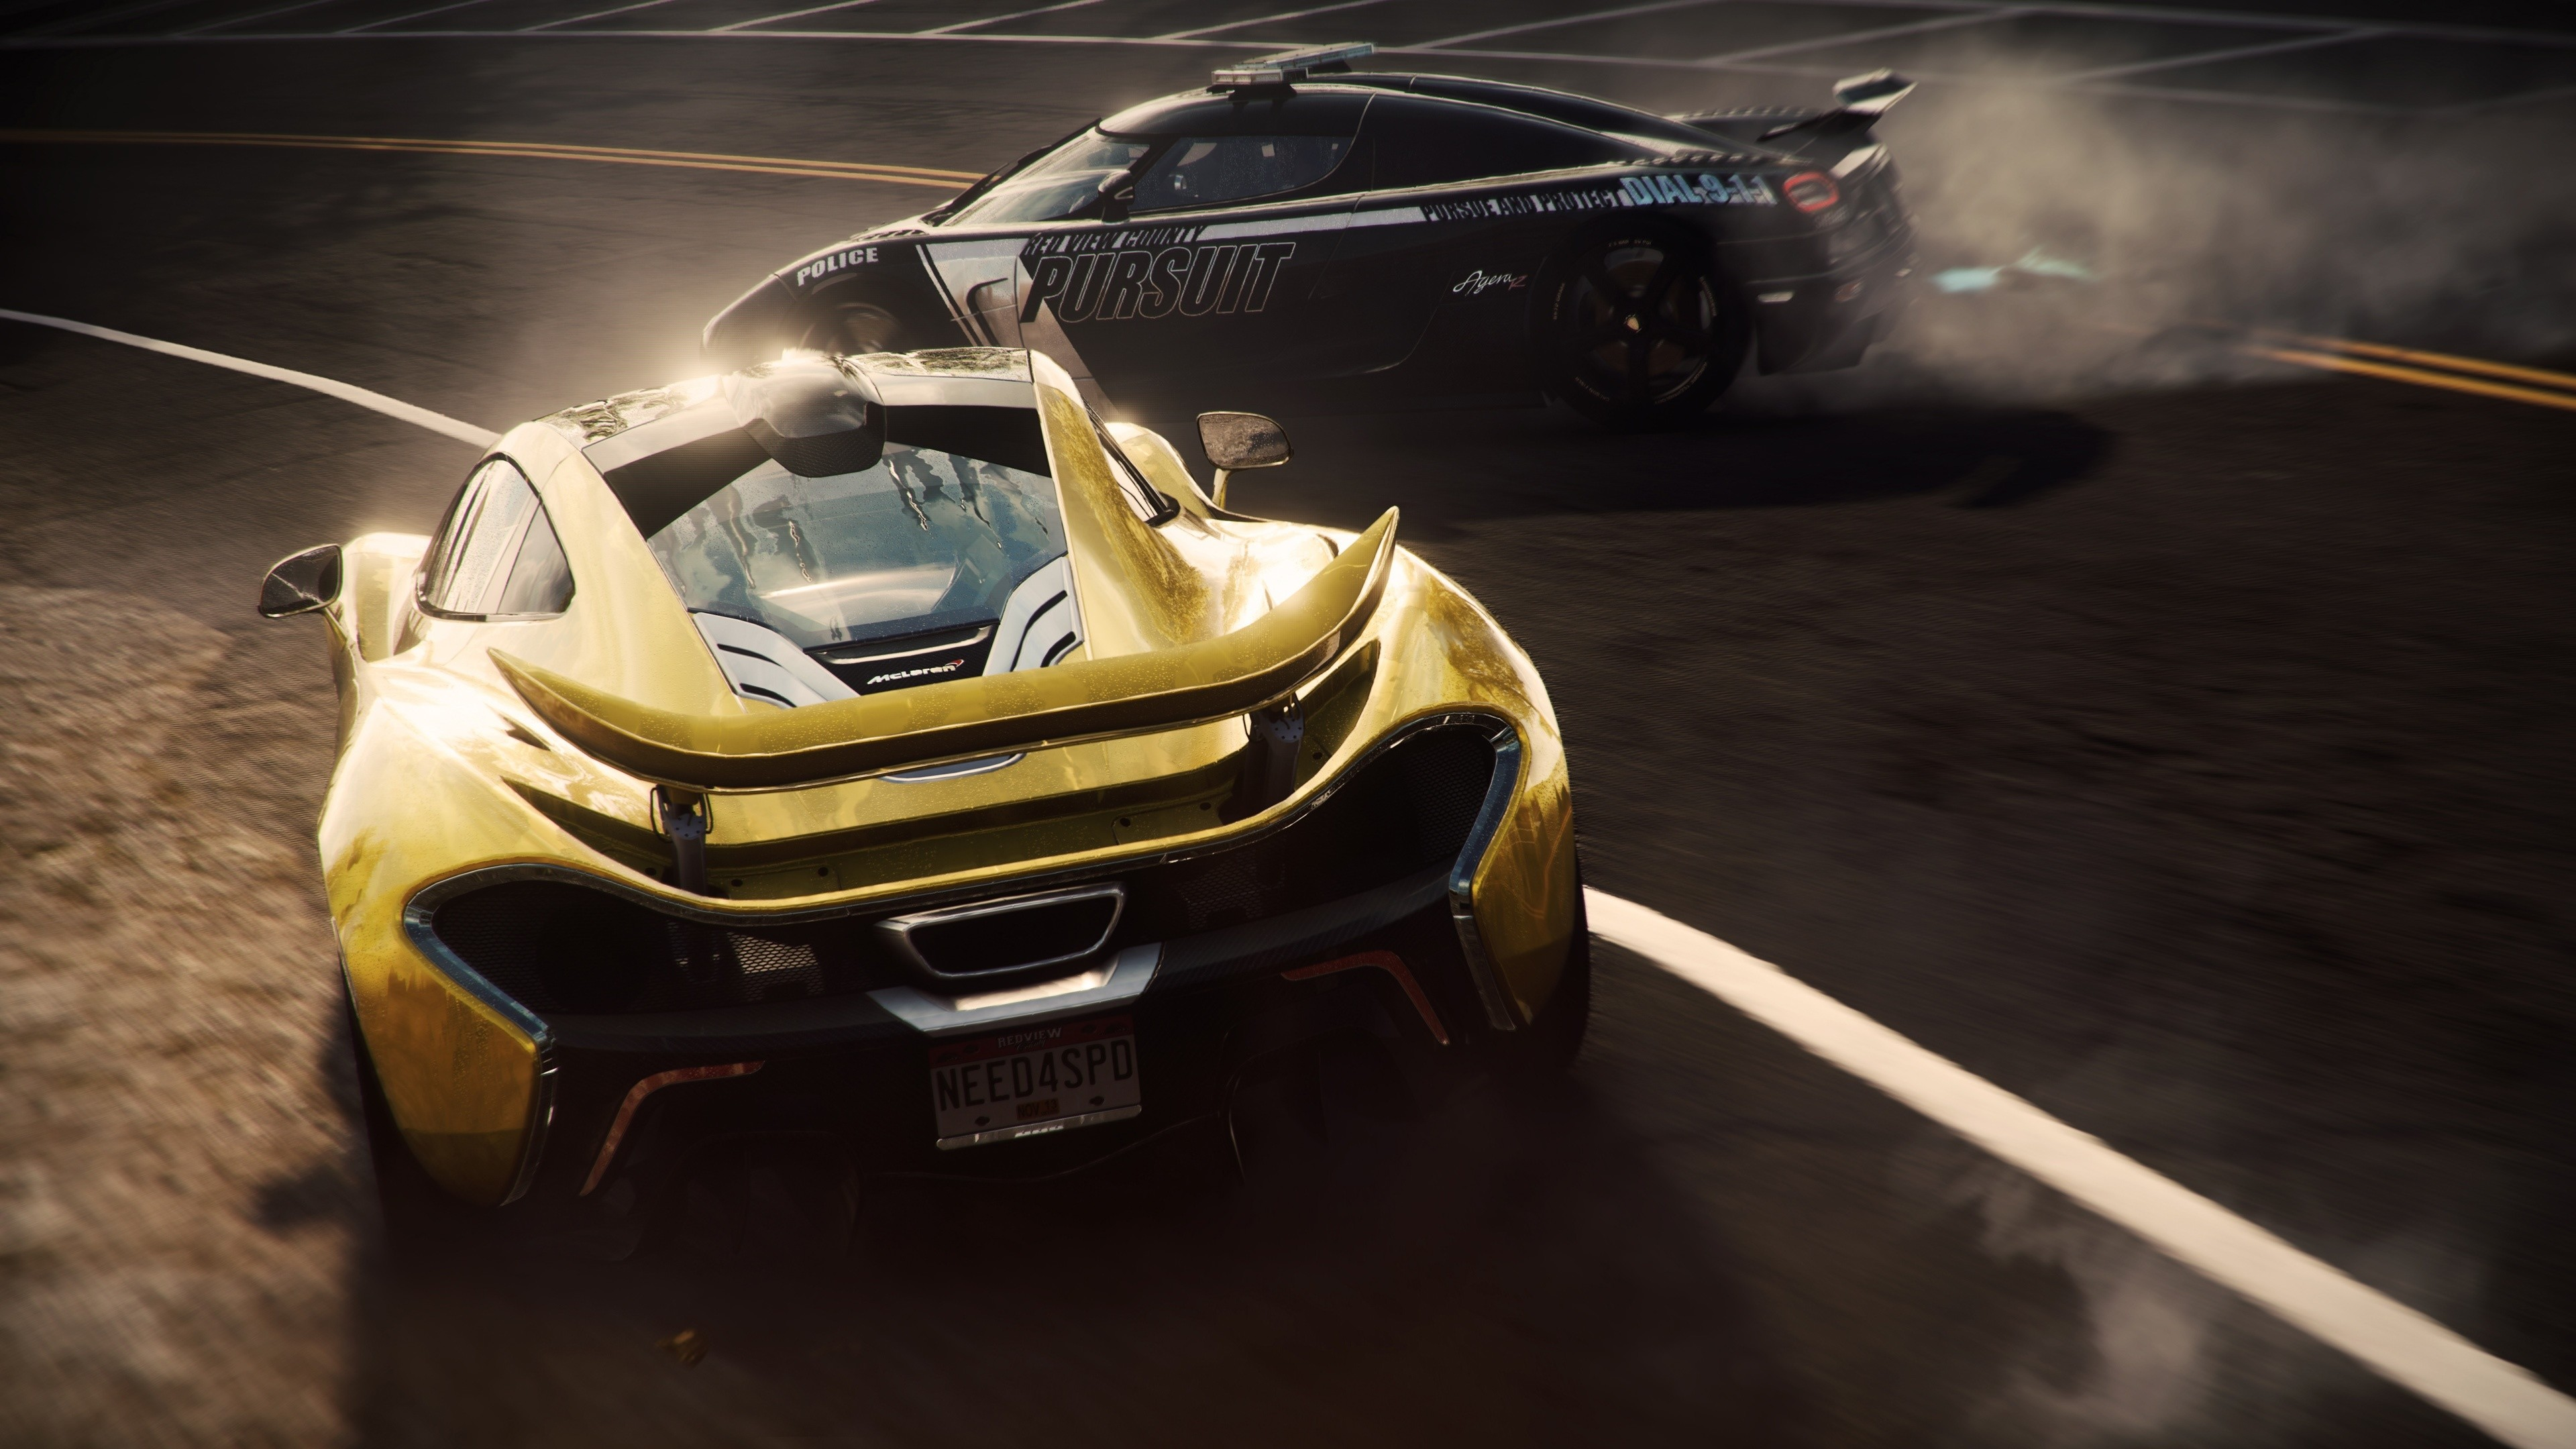 Preview wallpaper need for speed rivals, nfs rivals, need for speed,  mclaren p1